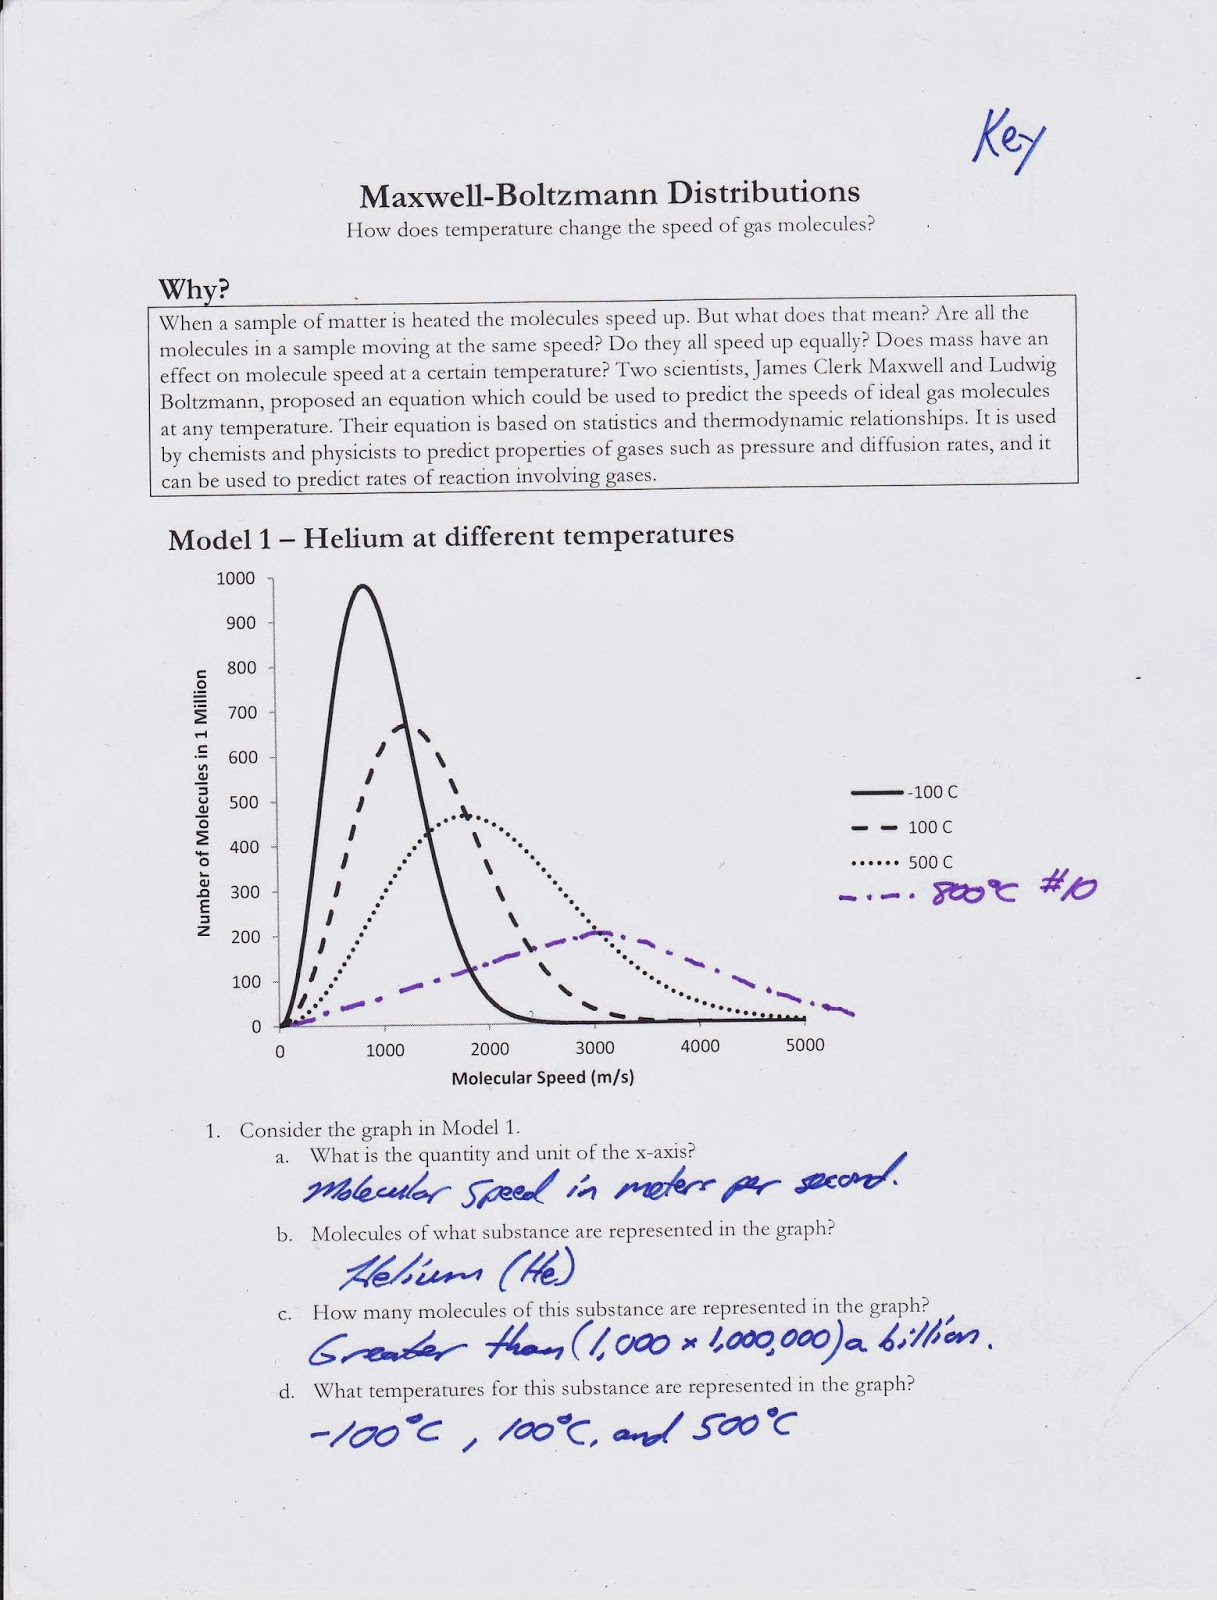 AP Chemistry Class 2013 / 2014: Gas Laws Test (Chapter 10) Review